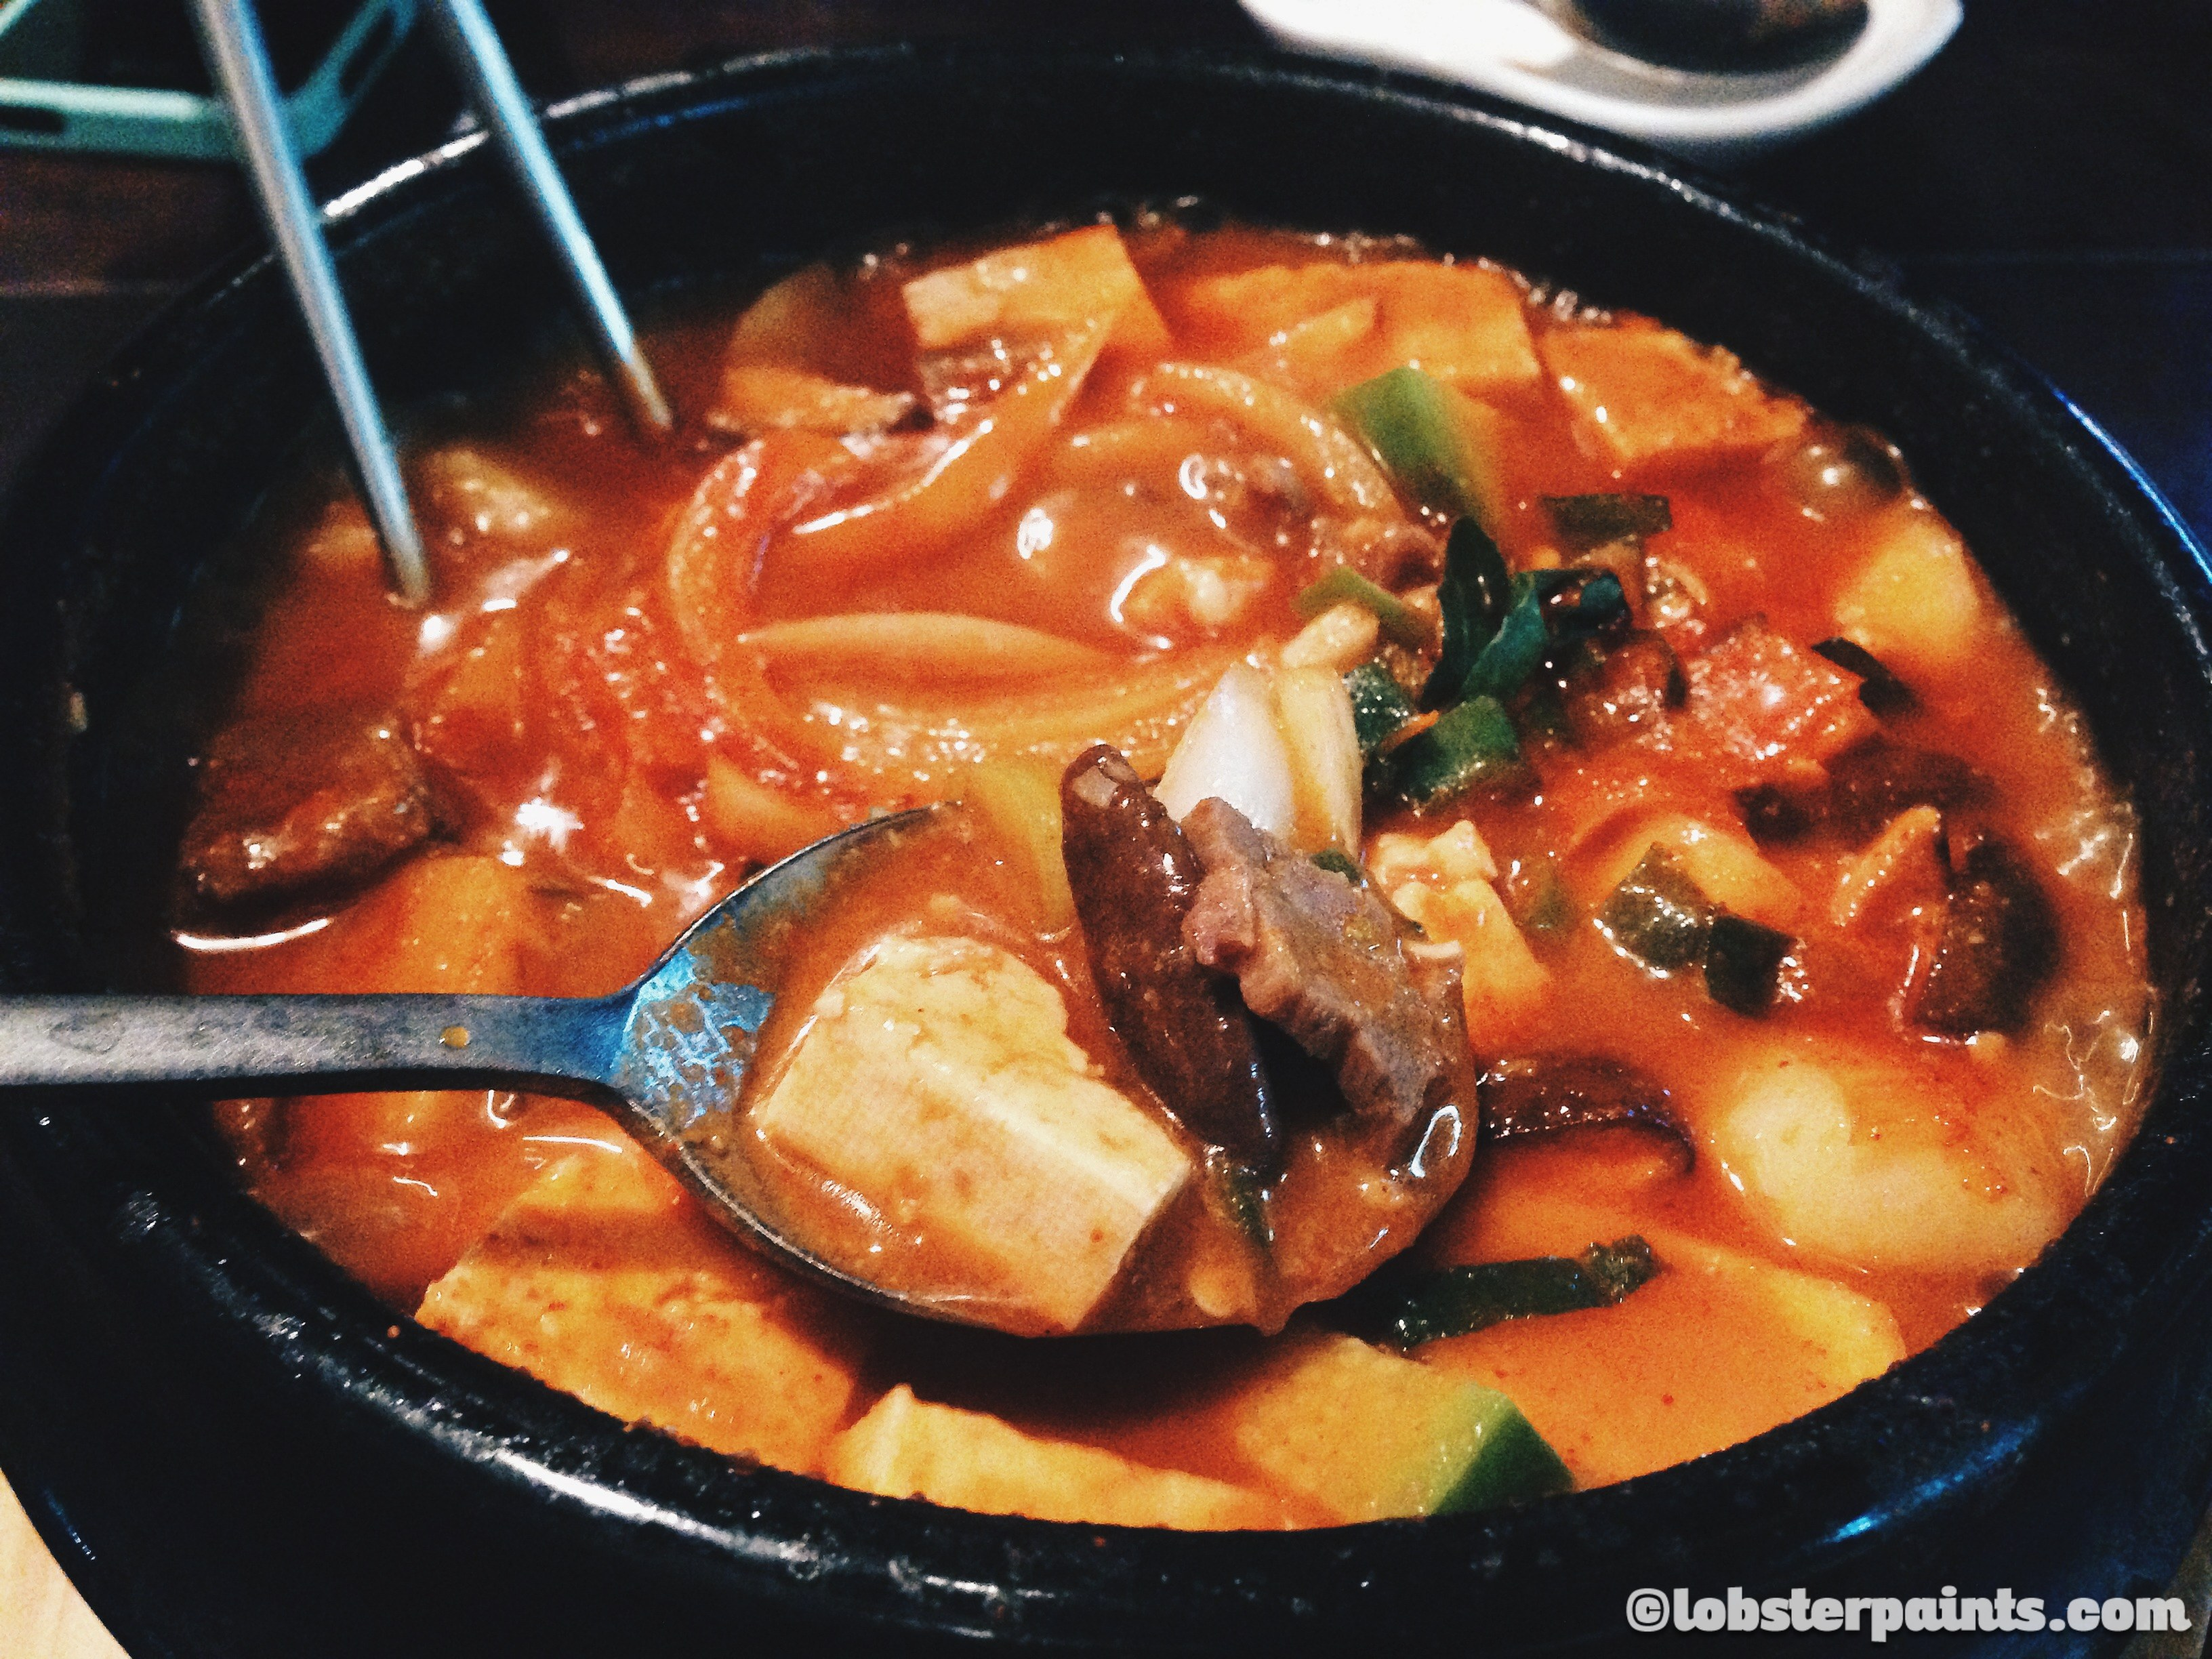 5 Oct 2014: Dinner @ Itaewon | Seoul, South Korea